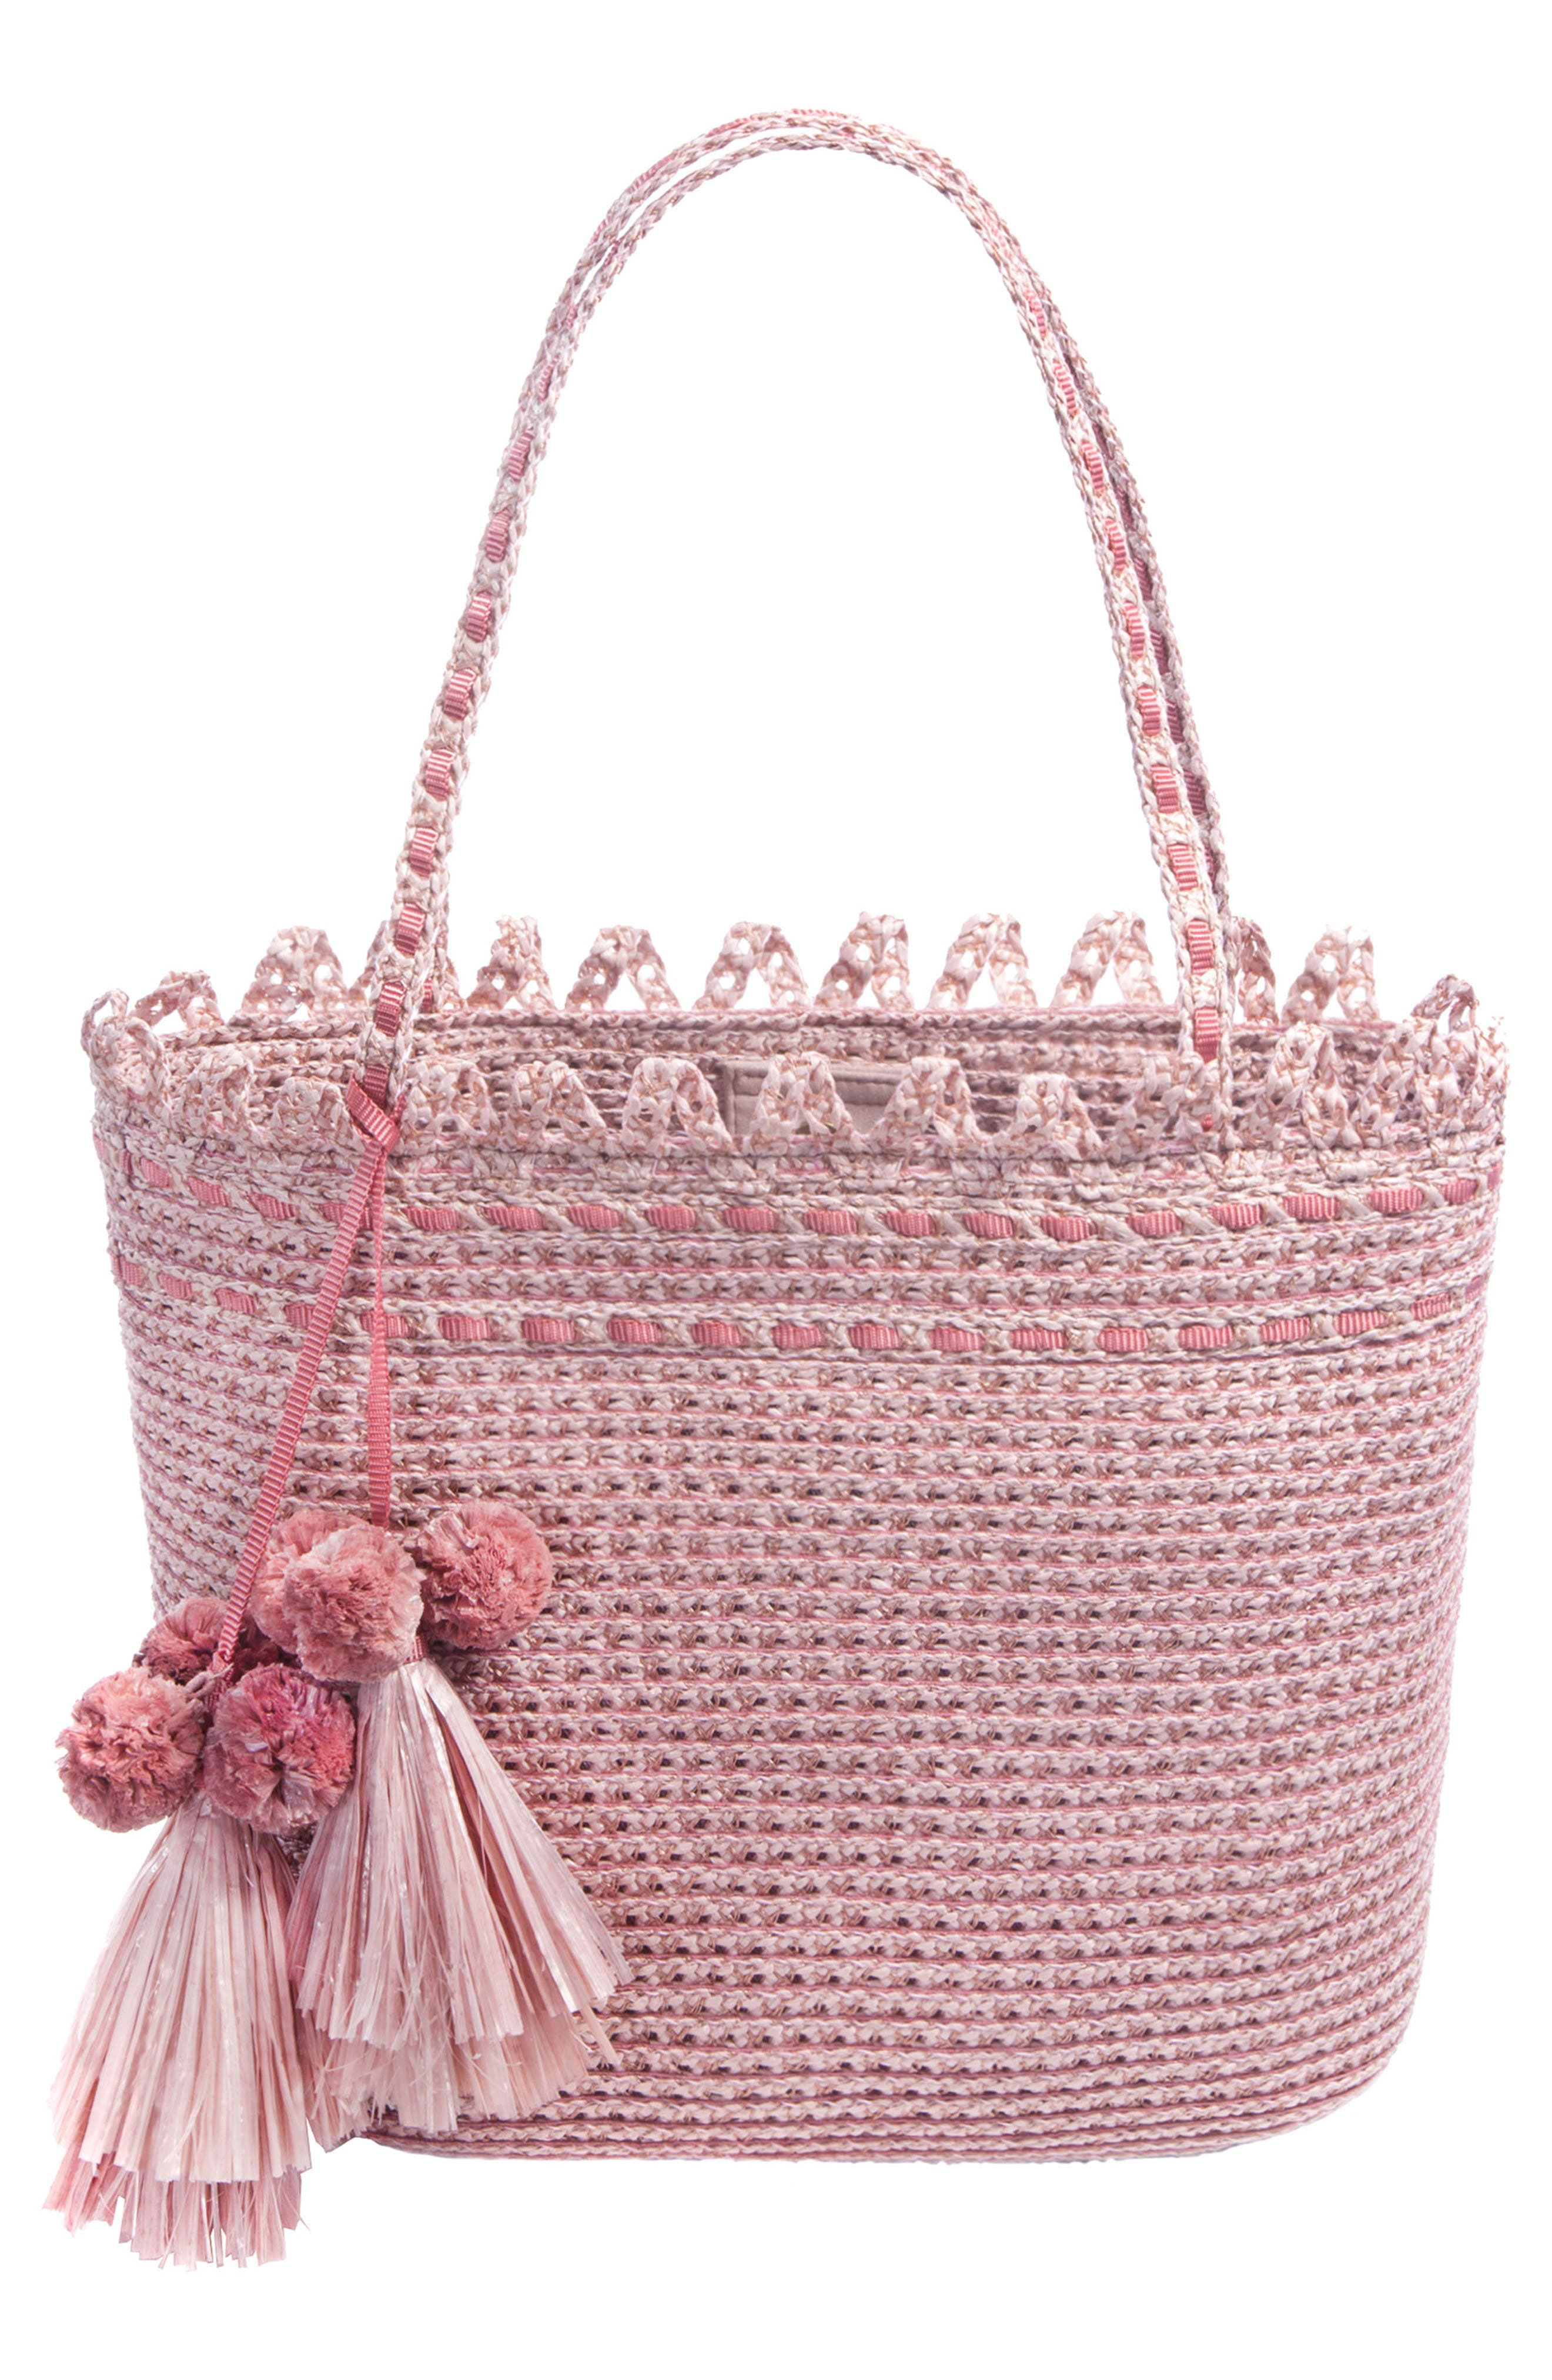 Bardot Squishee<sup>®</sup> Tote,                         Main,                         color, Blush